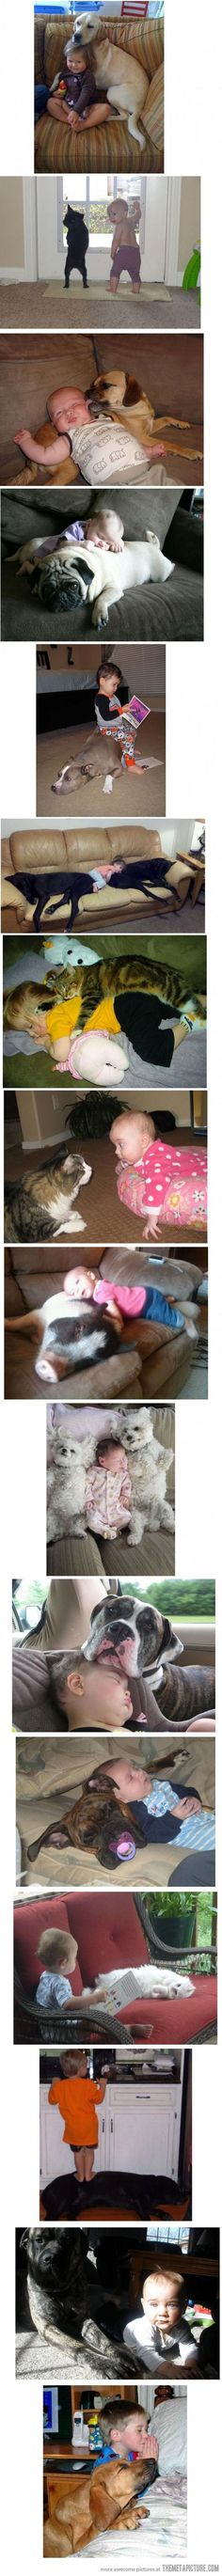 Babies and kids really have a special relationship with their pets. Each picture tells us so more about their love for their human.